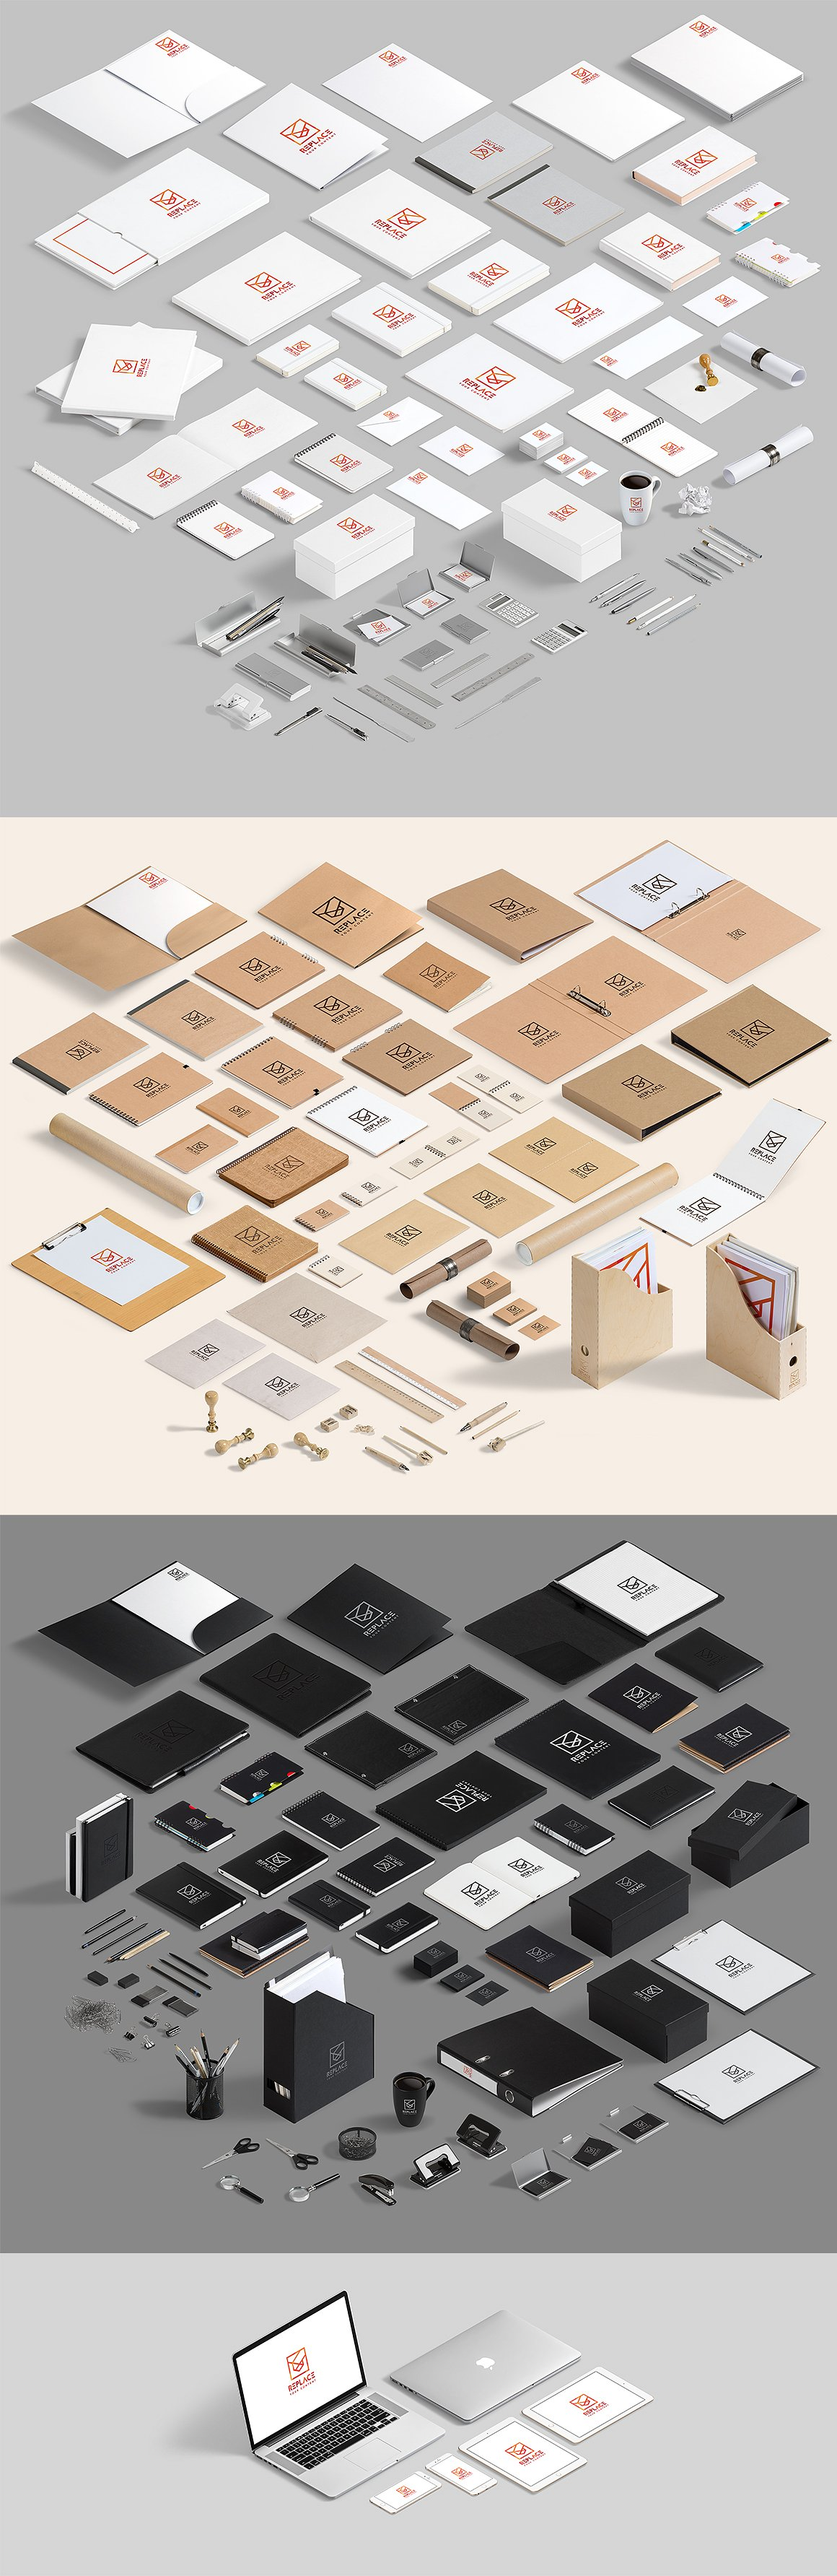 Download Isometric Stationery Mock Up Generator In Stationery Mockups On Yellow Images Creative Store PSD Mockup Templates